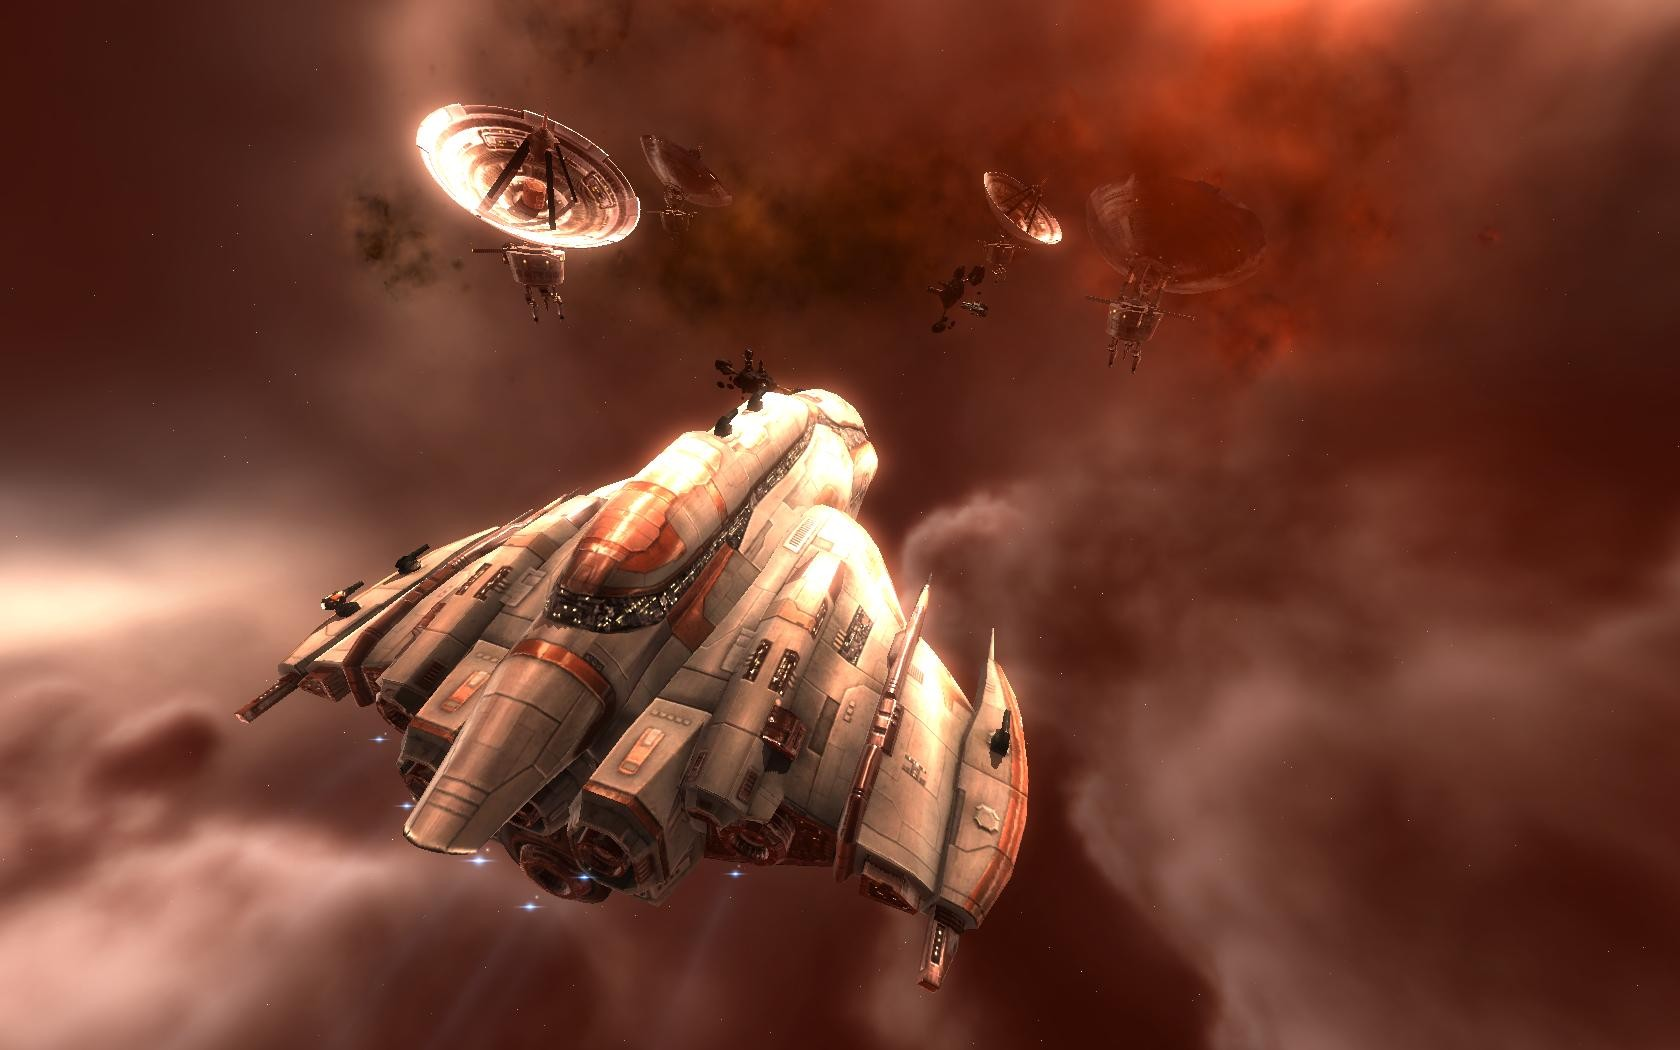 EVE Online - I call him &quot;Gilgamesh&quot; 